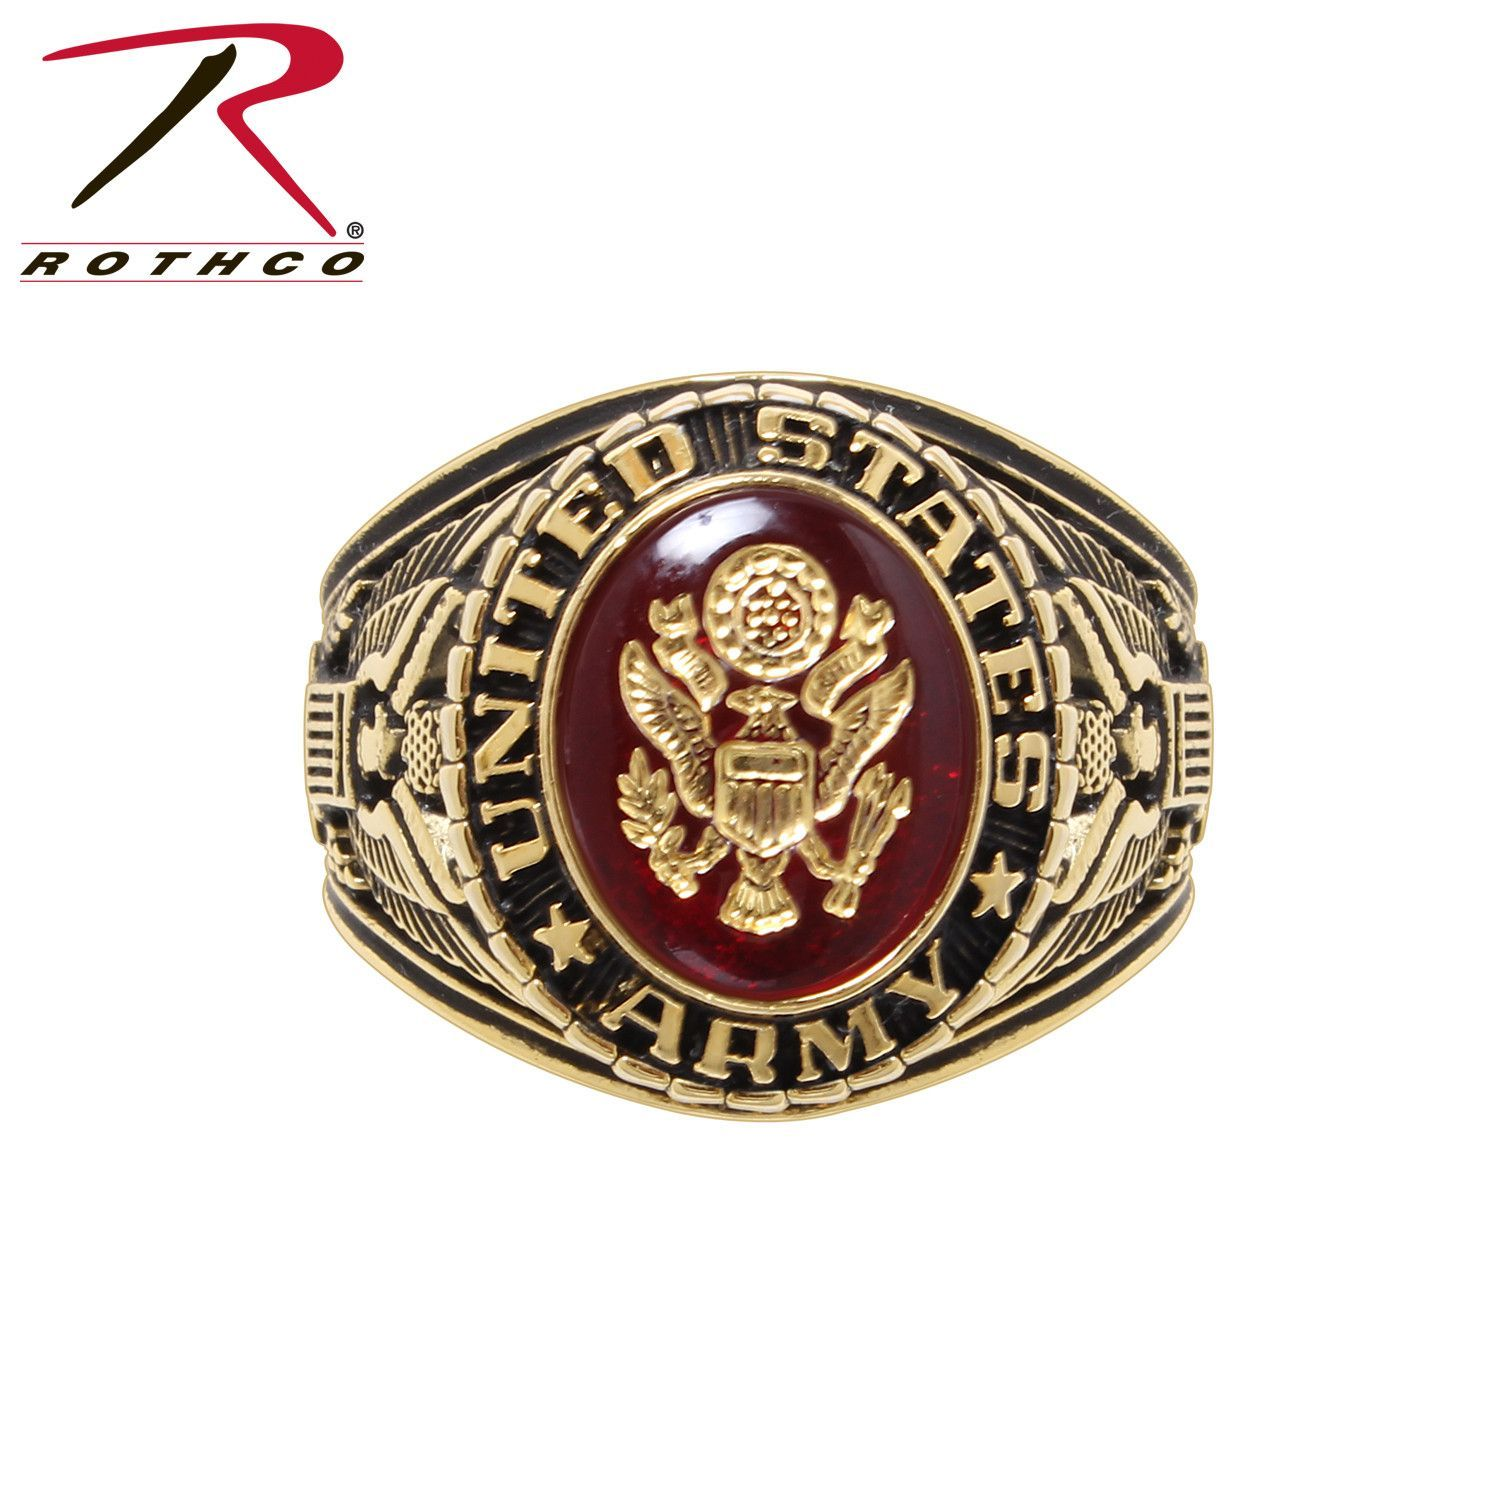 Deluxe Brass Engraved Ring